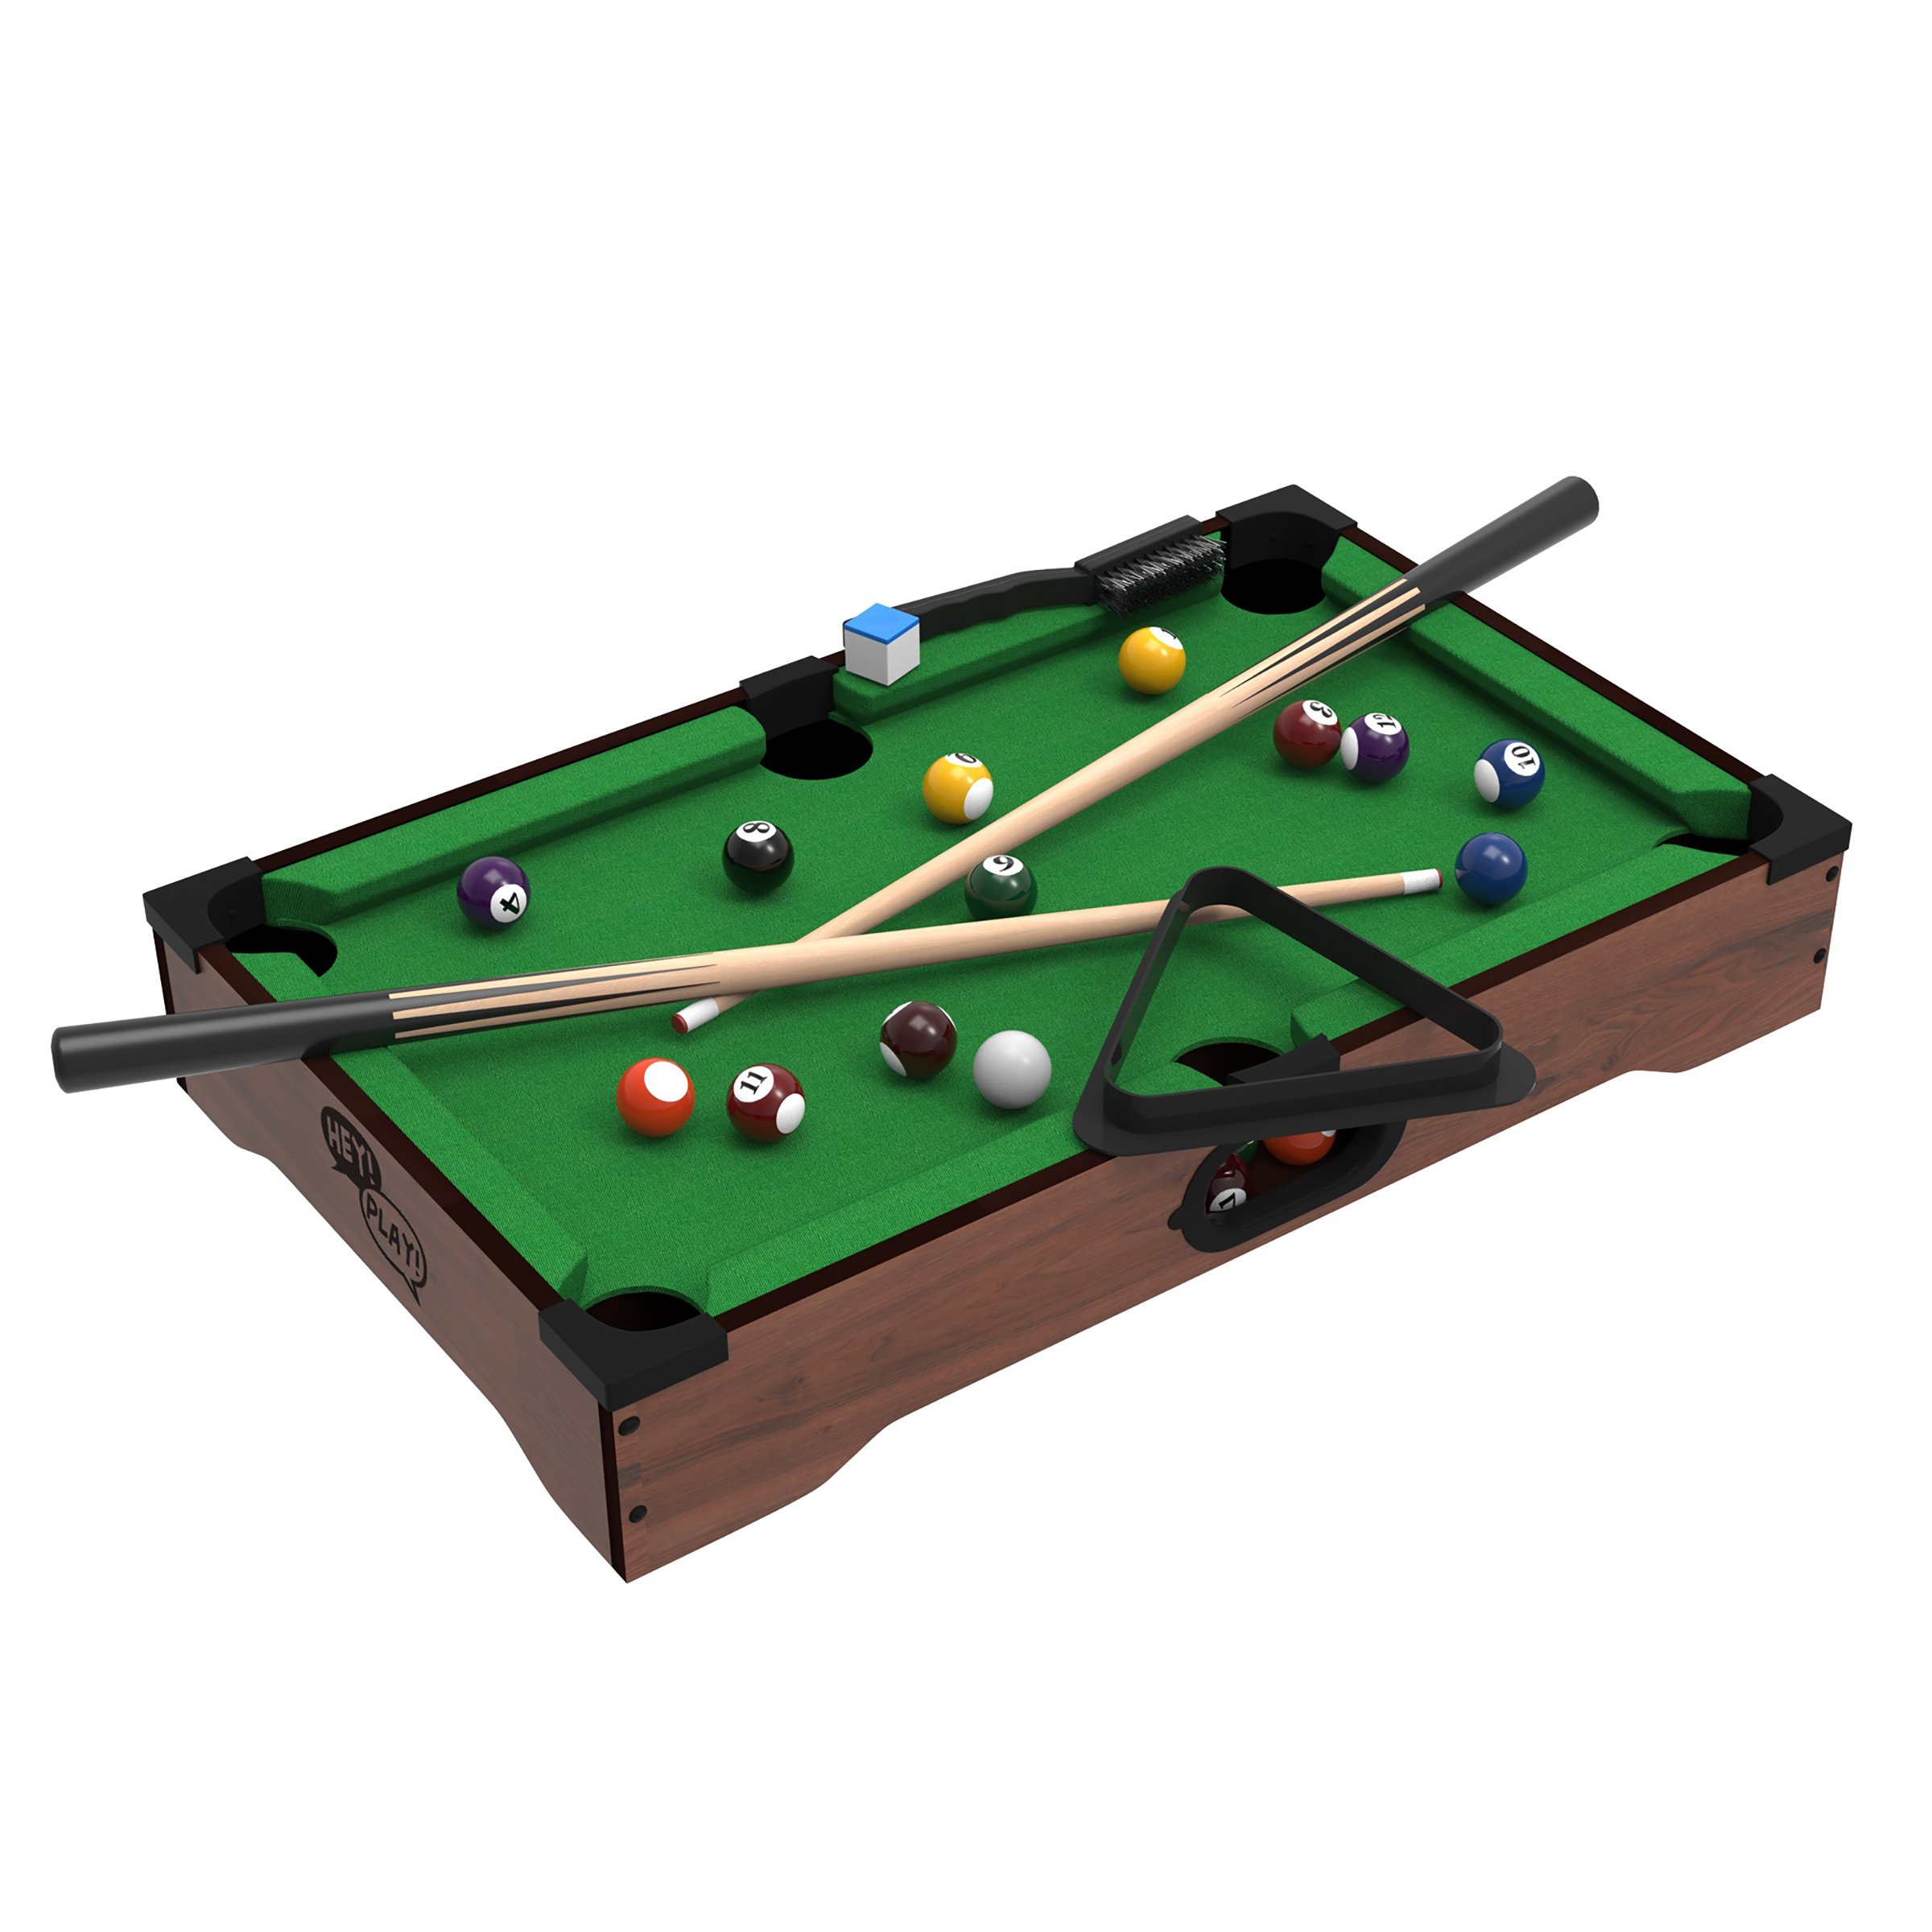 Mini Tabletop Pool Set- Billiards Game Includes Game Balls, Sticks, Chalk, Brush and Triangle-Portable and Fun for the Whole Family by Hey! Play! by Trademark Games